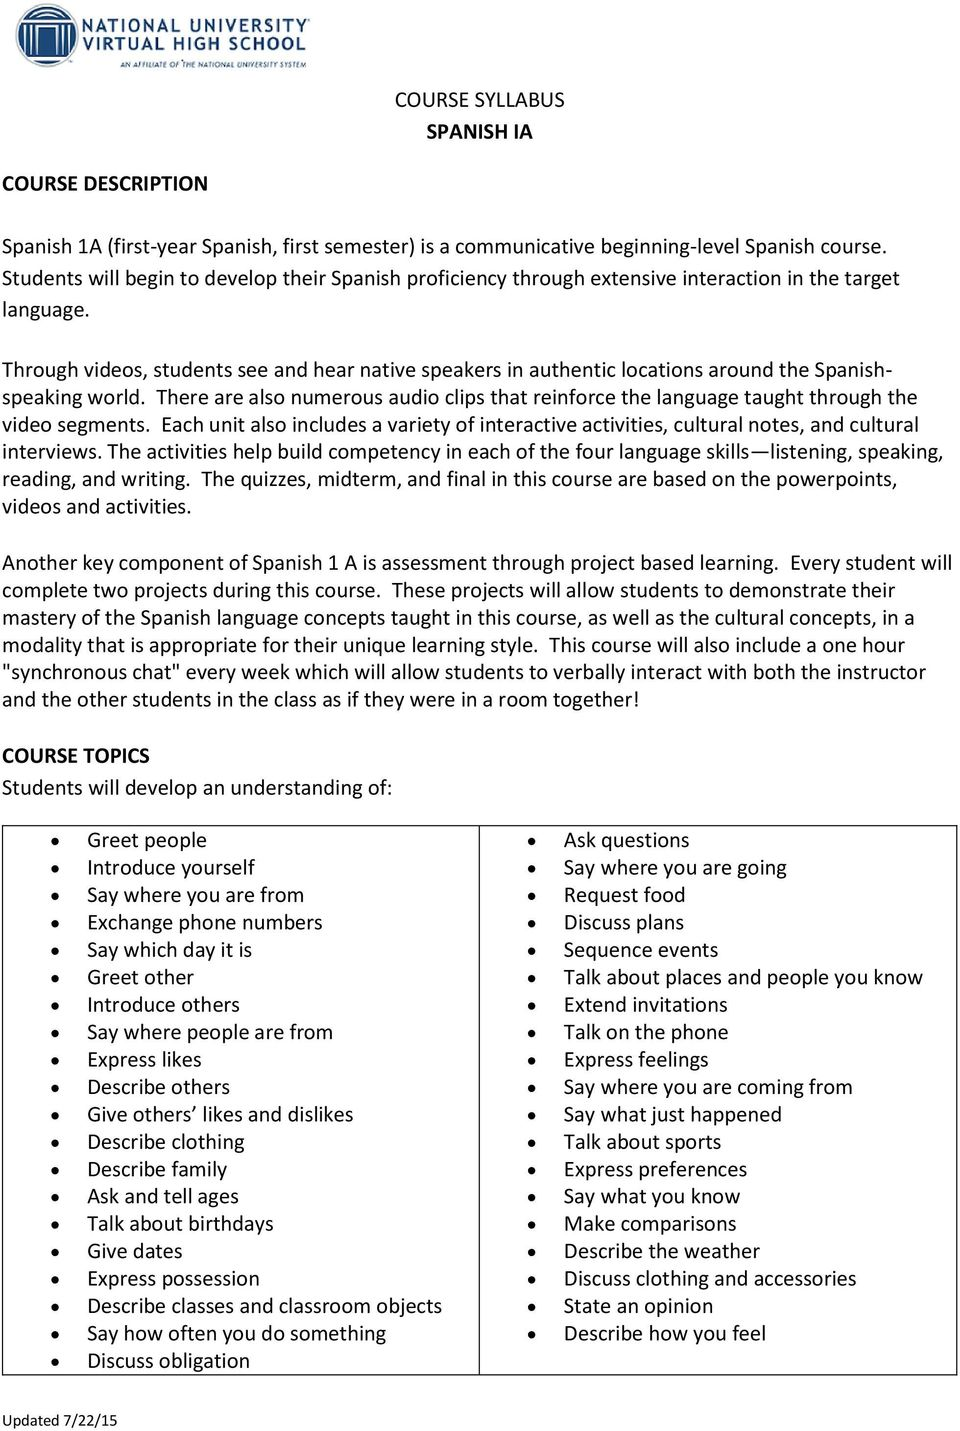 Course Syllabus Spanish Ia Pdf